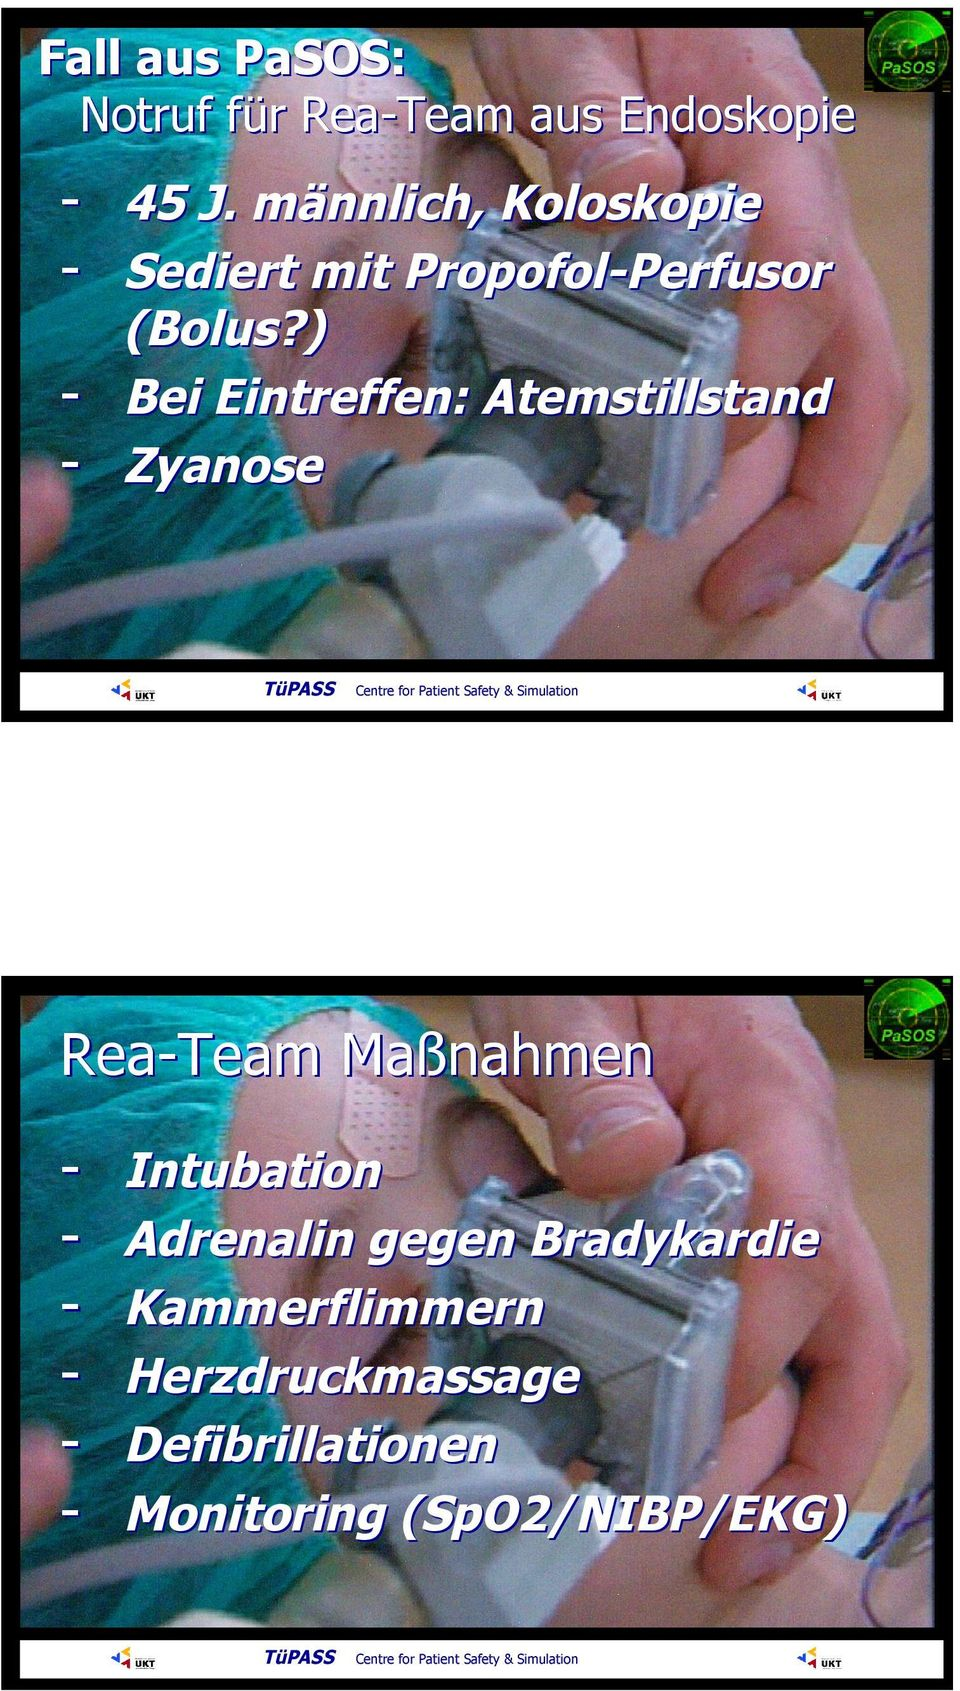 ) - Bei Eintreffen: Atemstillstand - Zyanose Centre for Patient Safety & Simulation Rea-Team